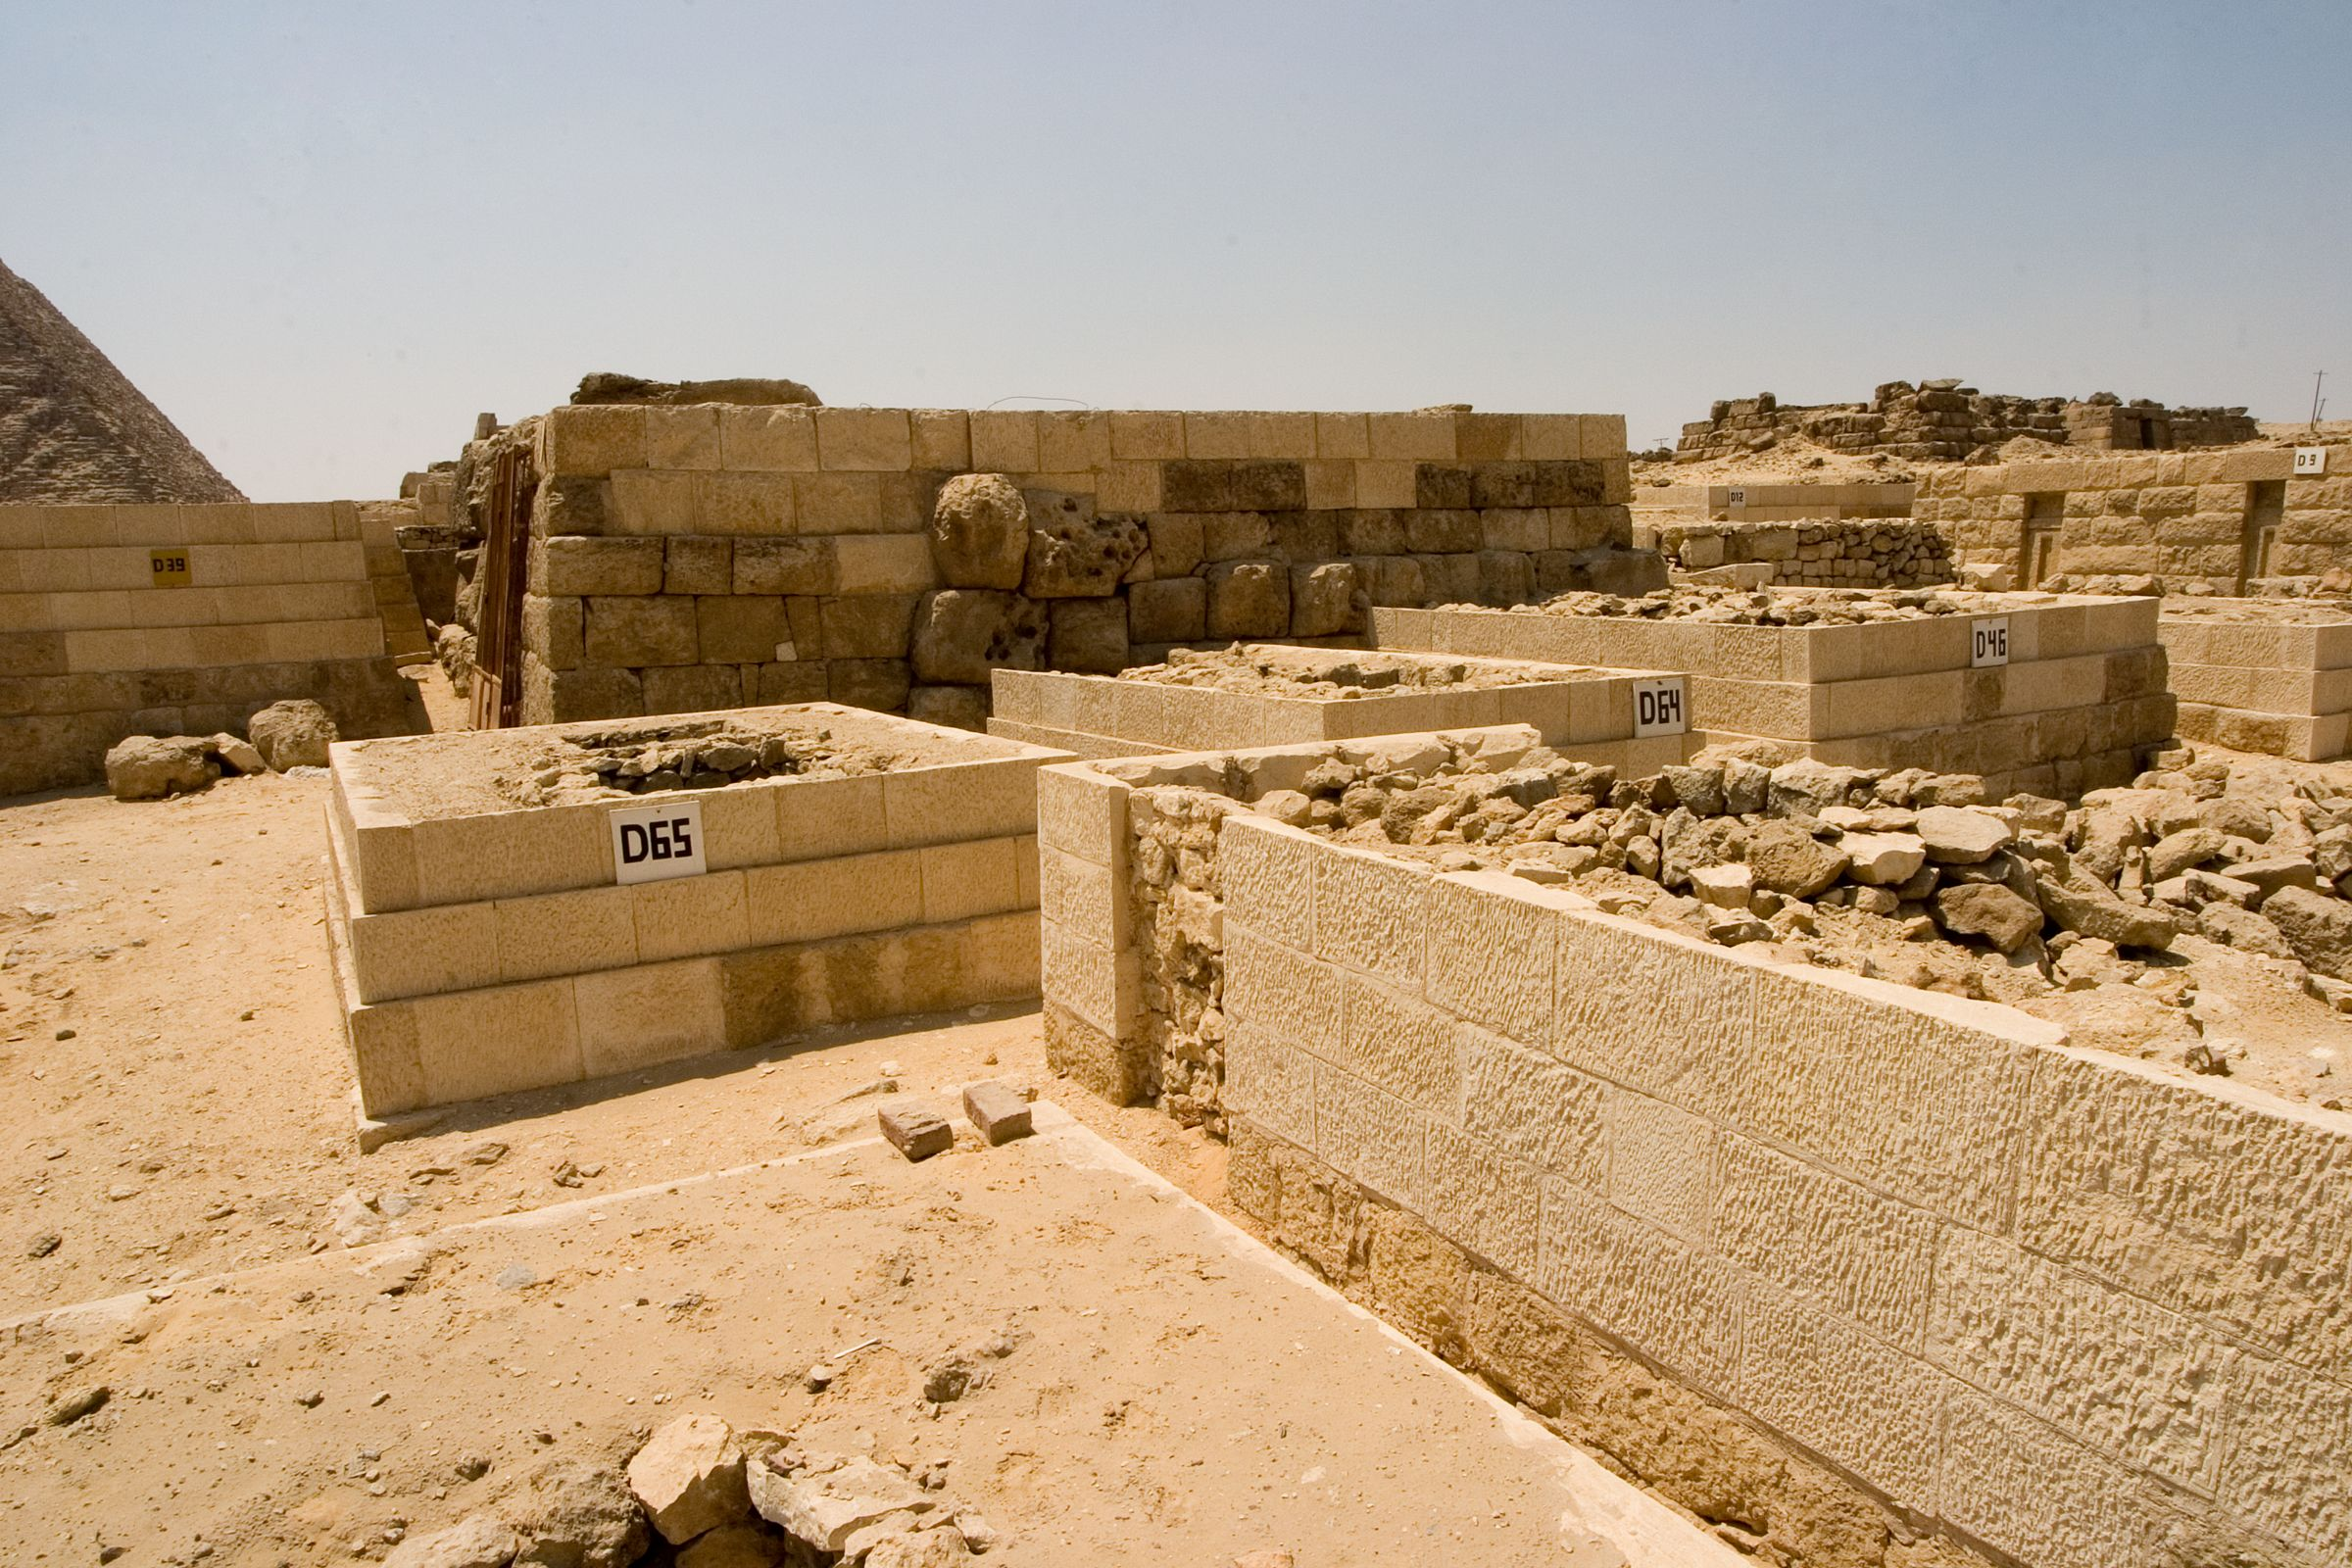 Western Cemetery: Site: Giza; View: D 65, D 64, D 46